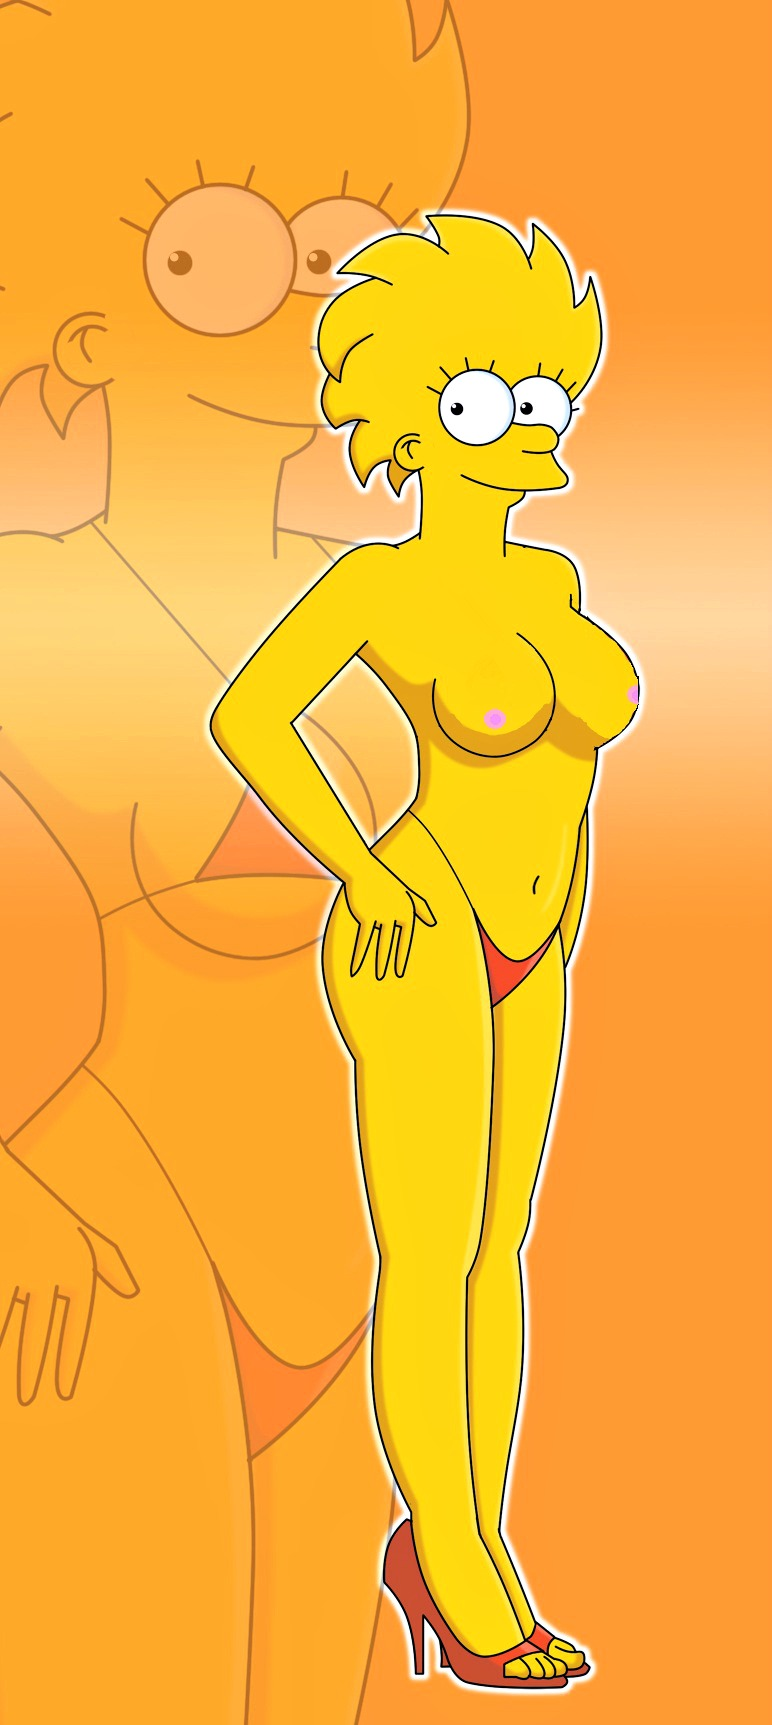 hardcore-videos-the-simpsons-irls-characters-horney-nude-school-girl-uniform